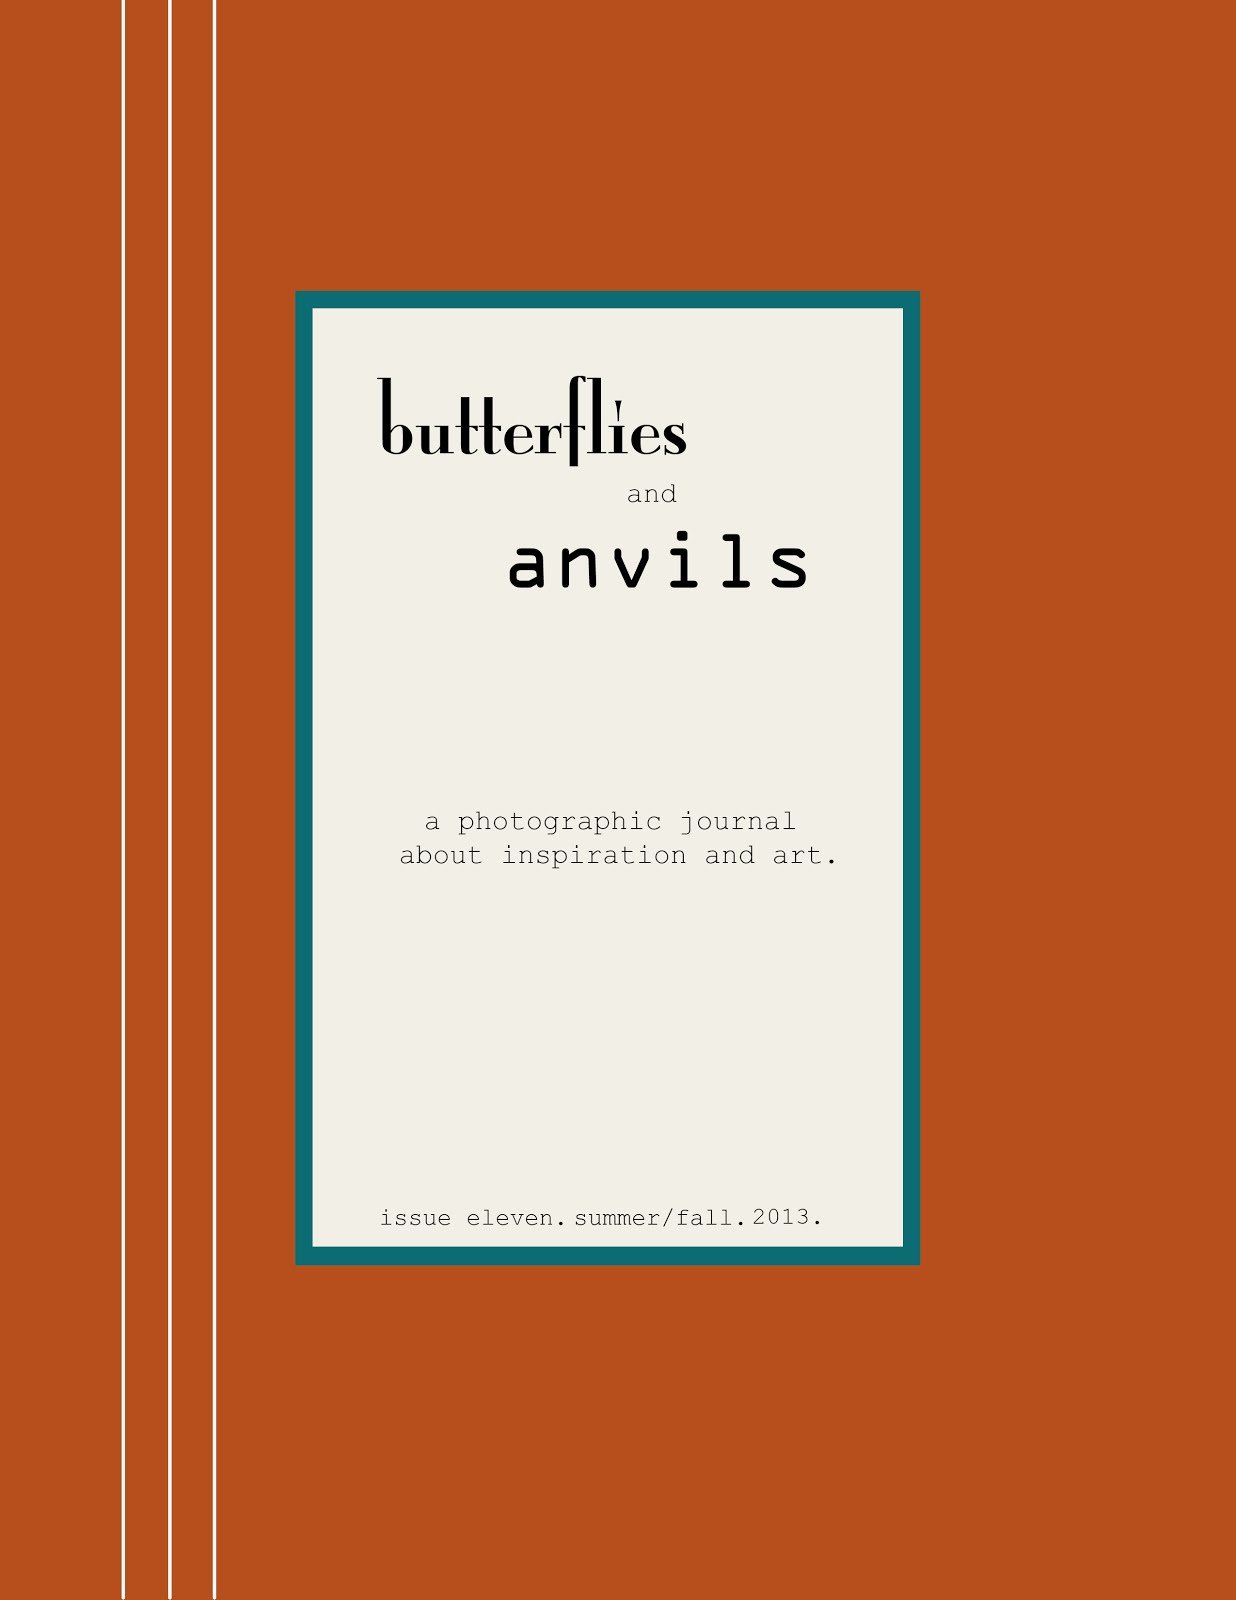 butterflies and anvils. SUMMER/FALL ISSUE!